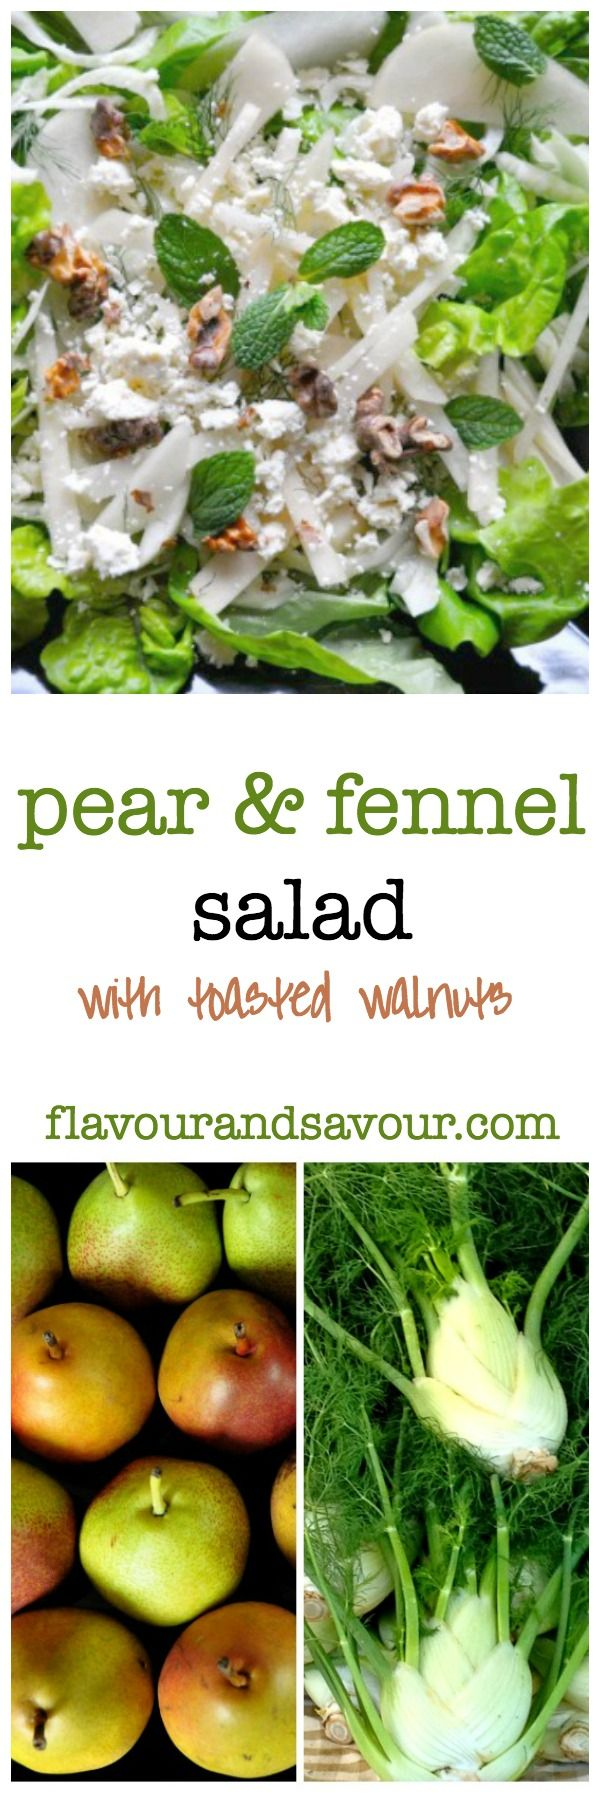 Fresh pears, fresh fennel, walnuts and your choice of cheese makes this fabulous salad.